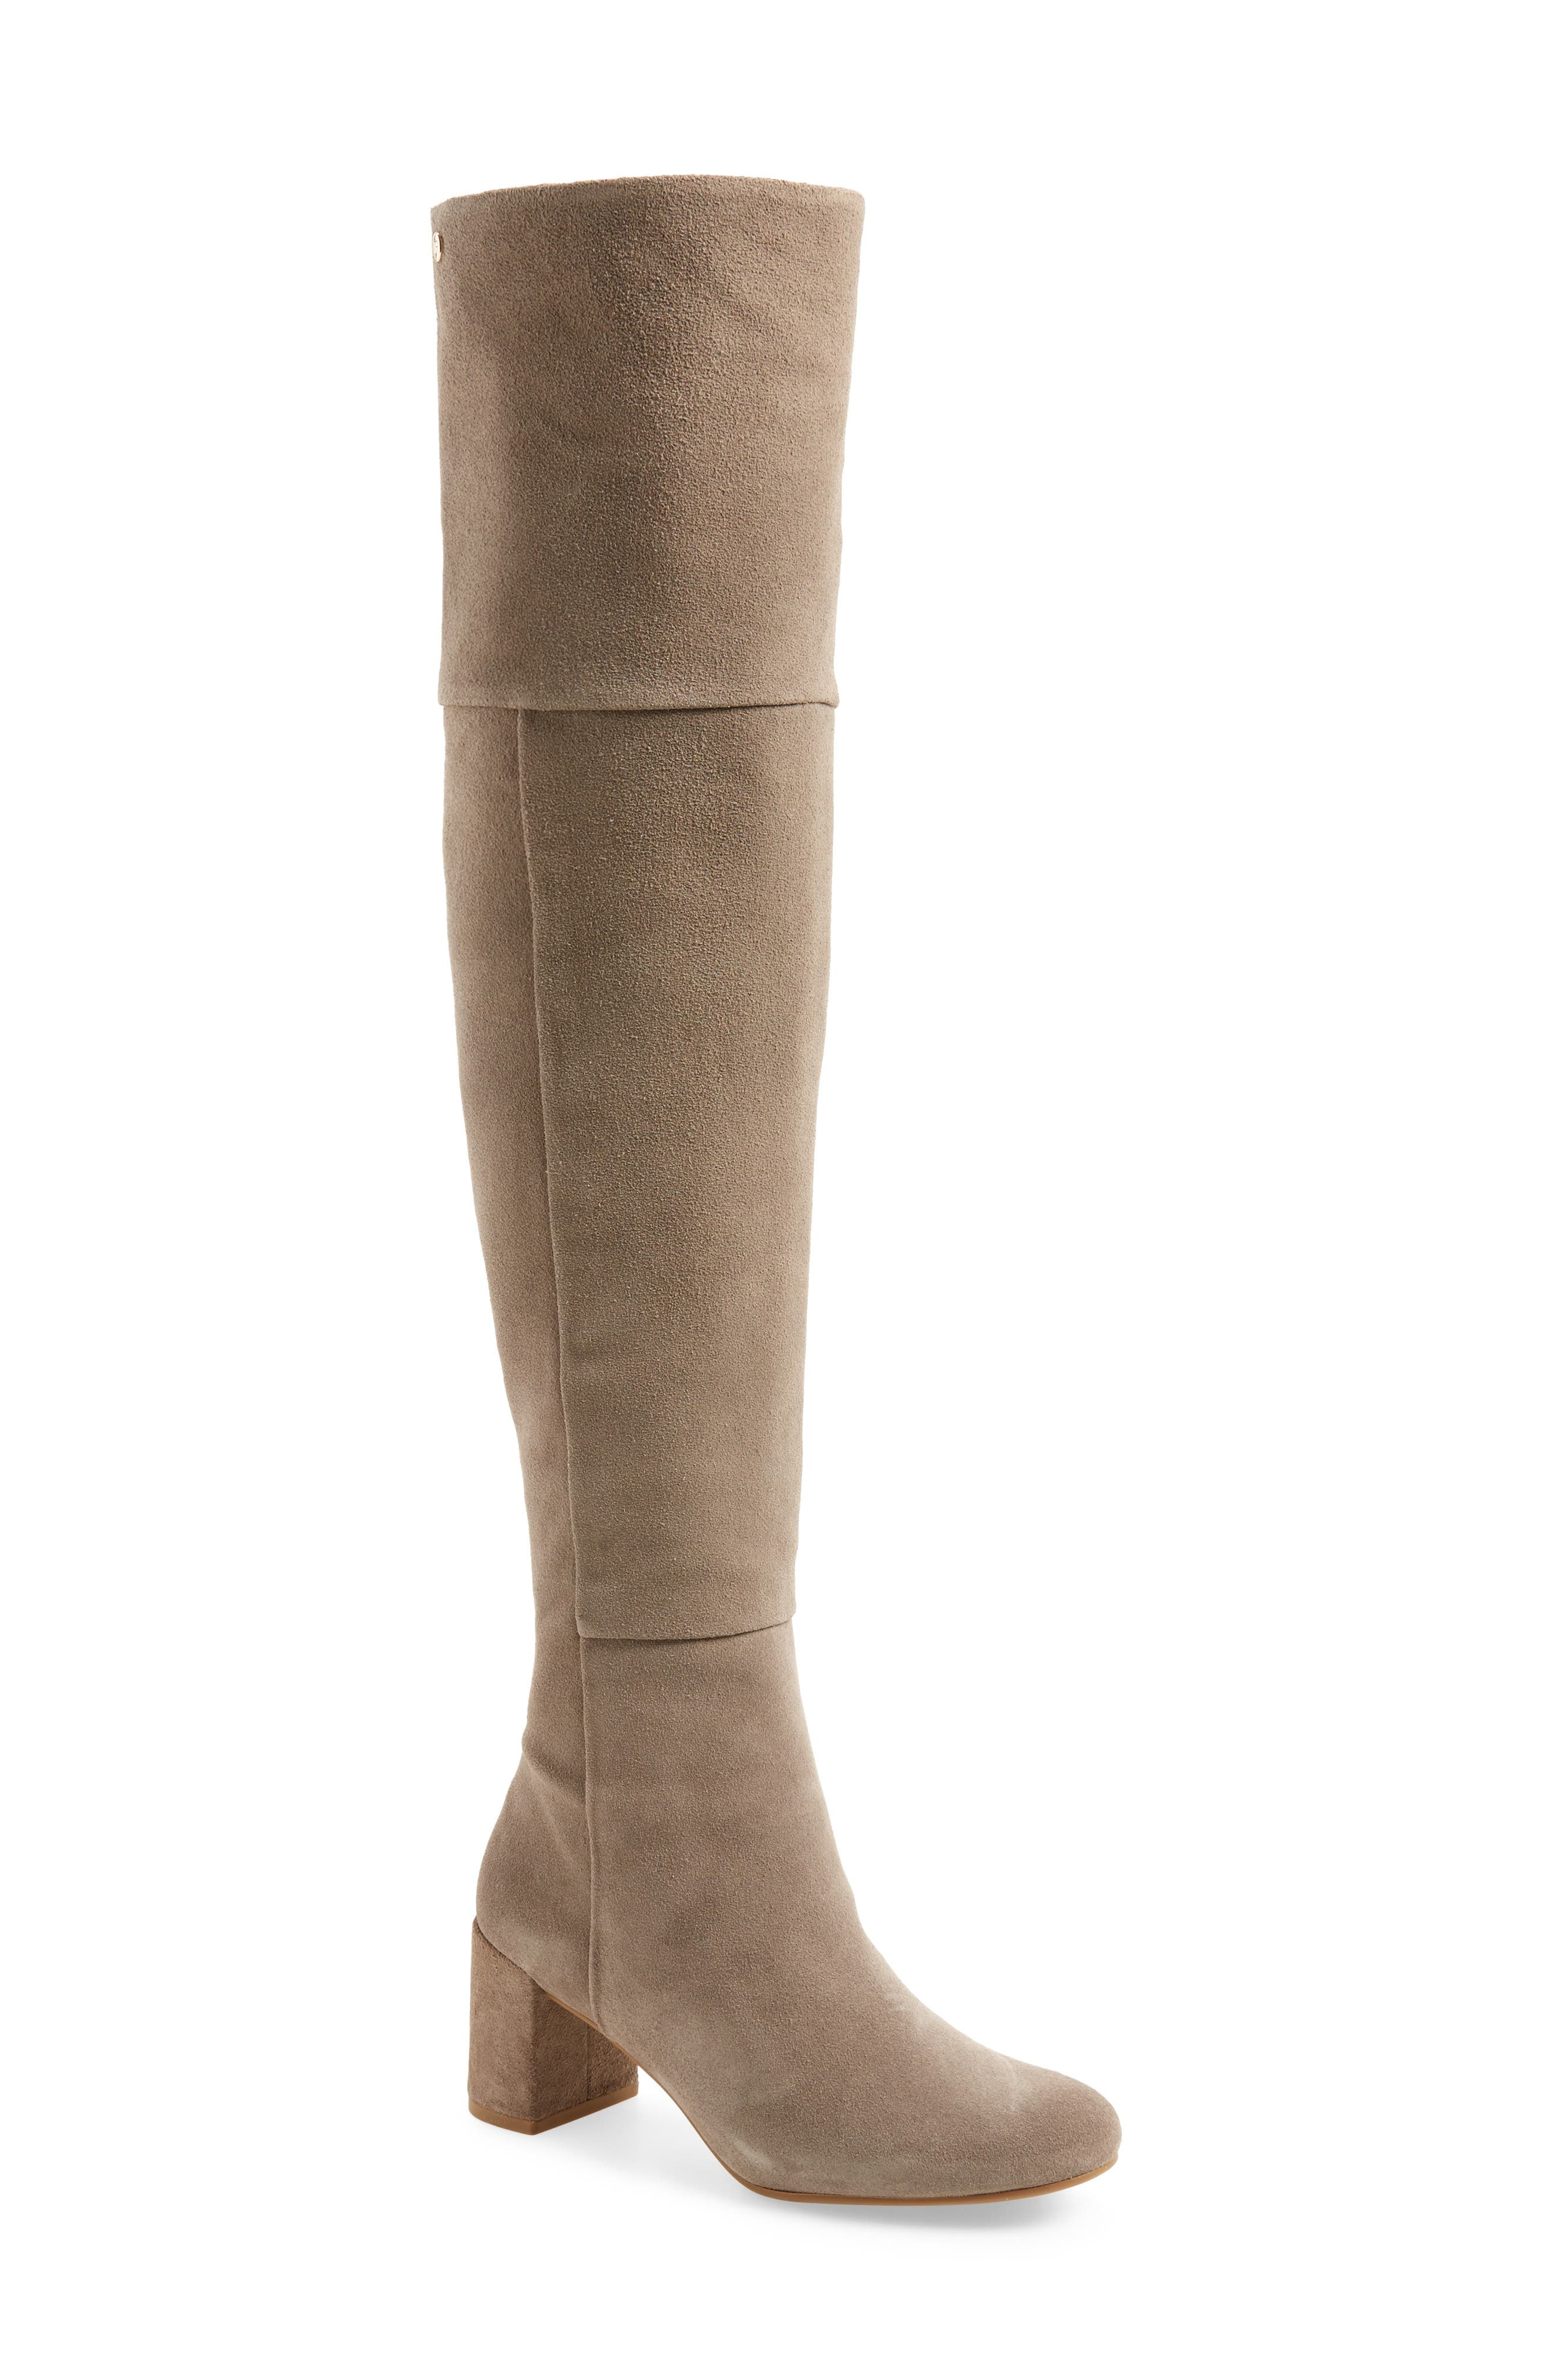 Catherine Over the Knee Boot,                         Main,                         color, Grey Suede